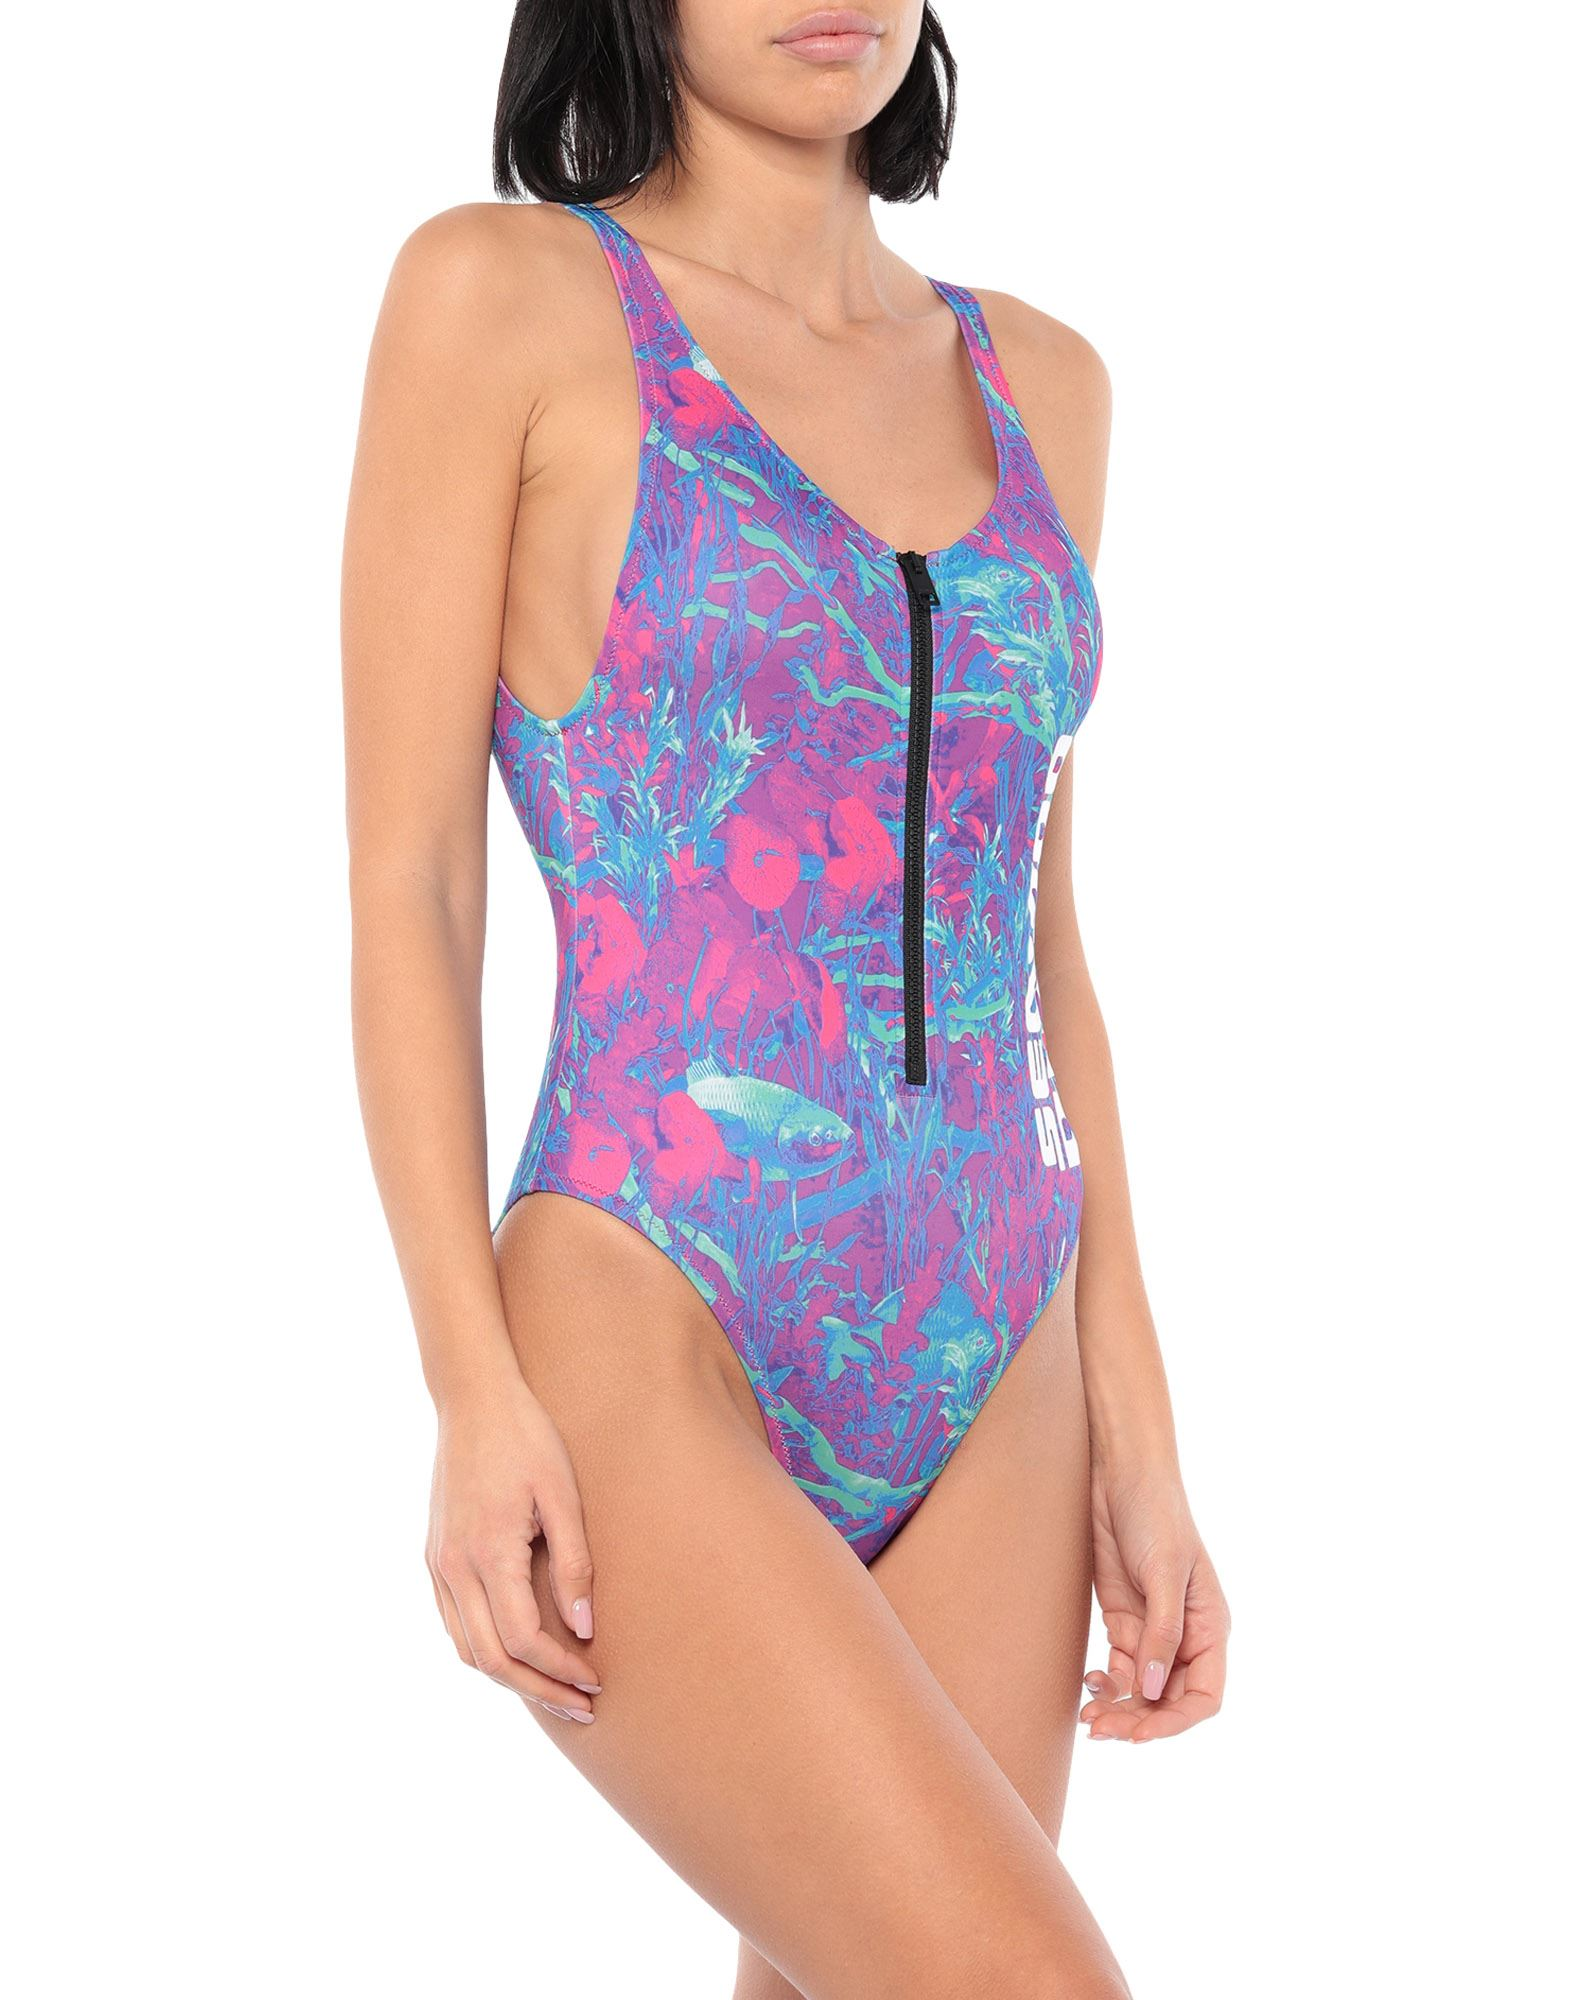 DIESEL One-piece swimsuits - Item 47283354